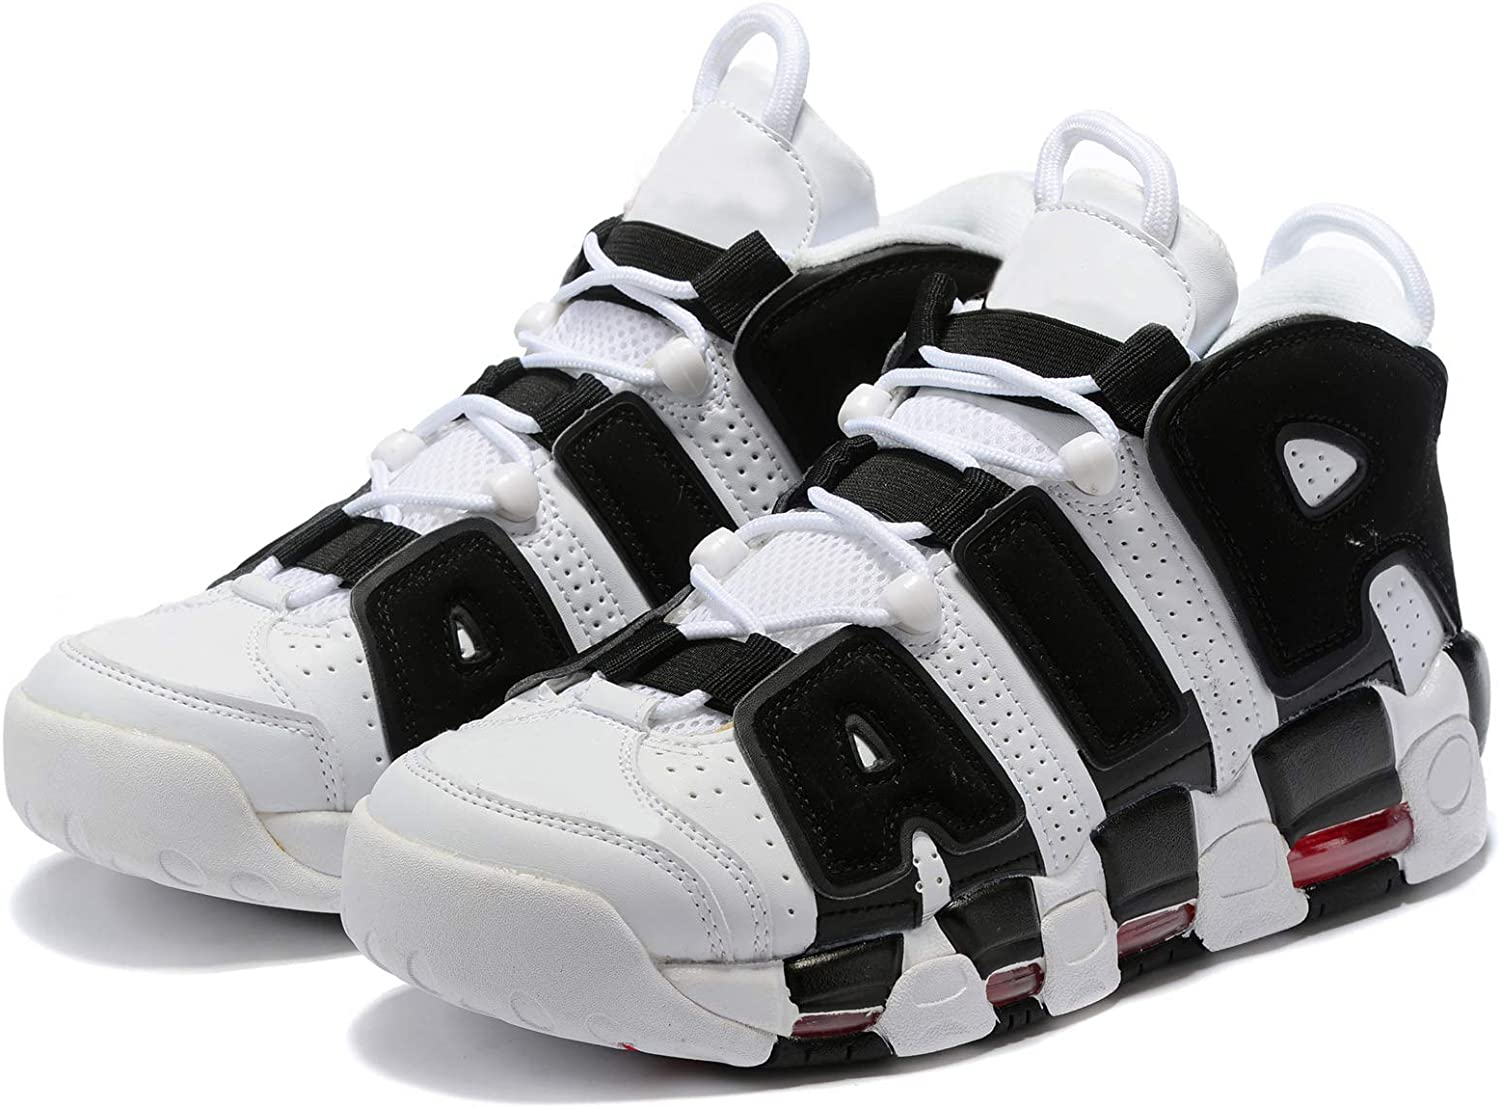 Air Cushion More Uptempo 96 Mens Fashion Basketball Shoes Running Sneakers